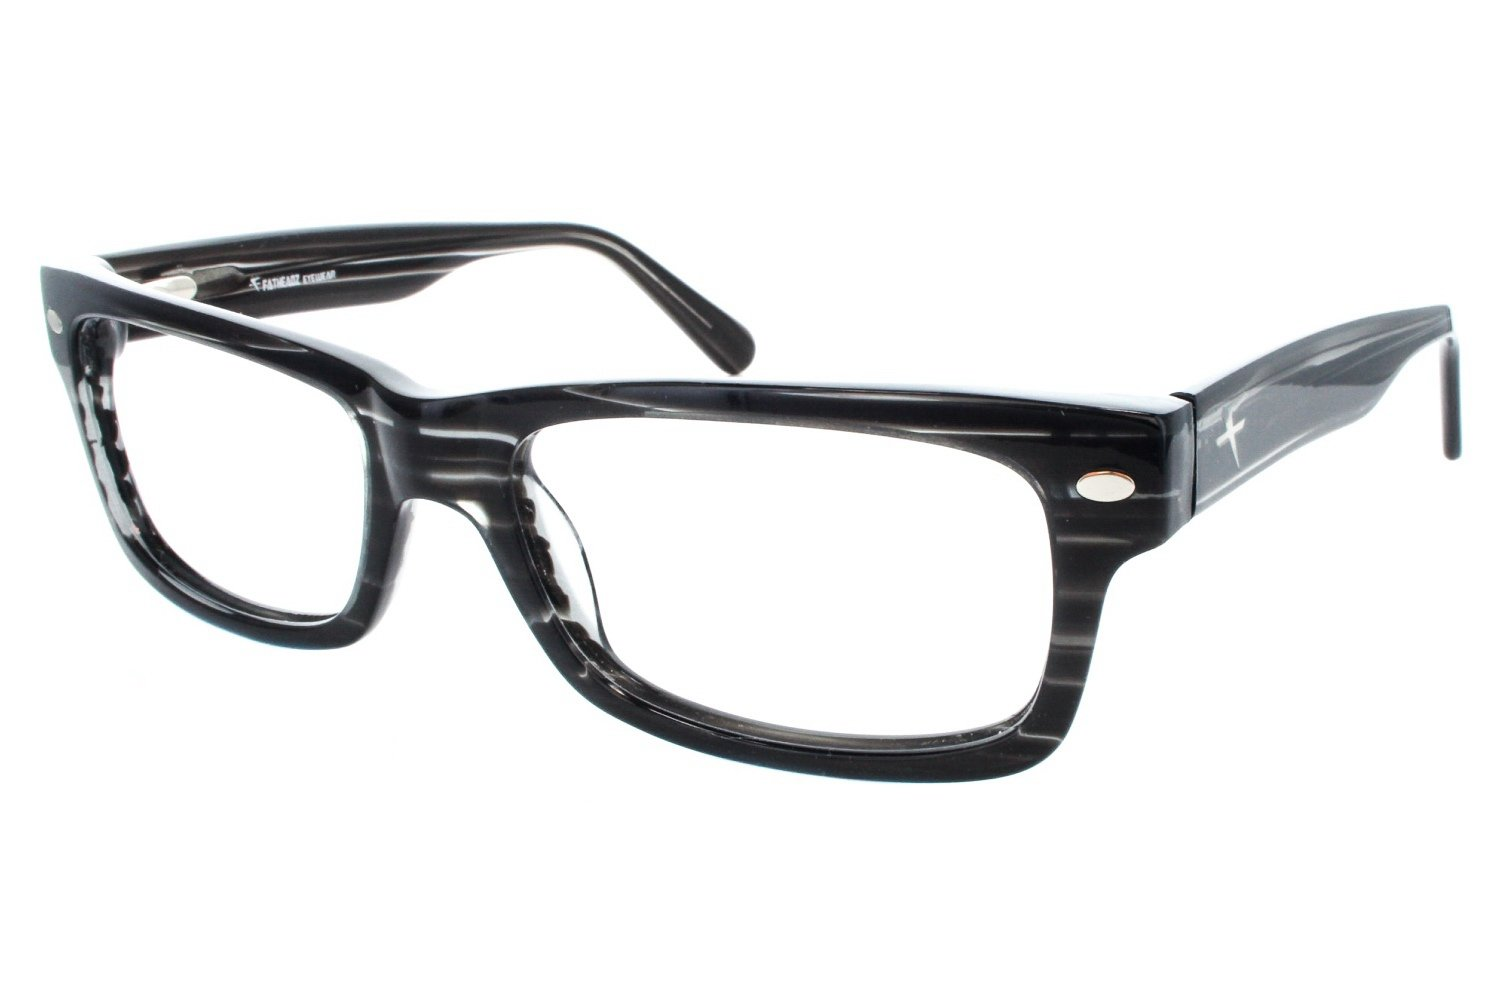 Fatheadz Foley FH00143 Retro Style Optical Frame